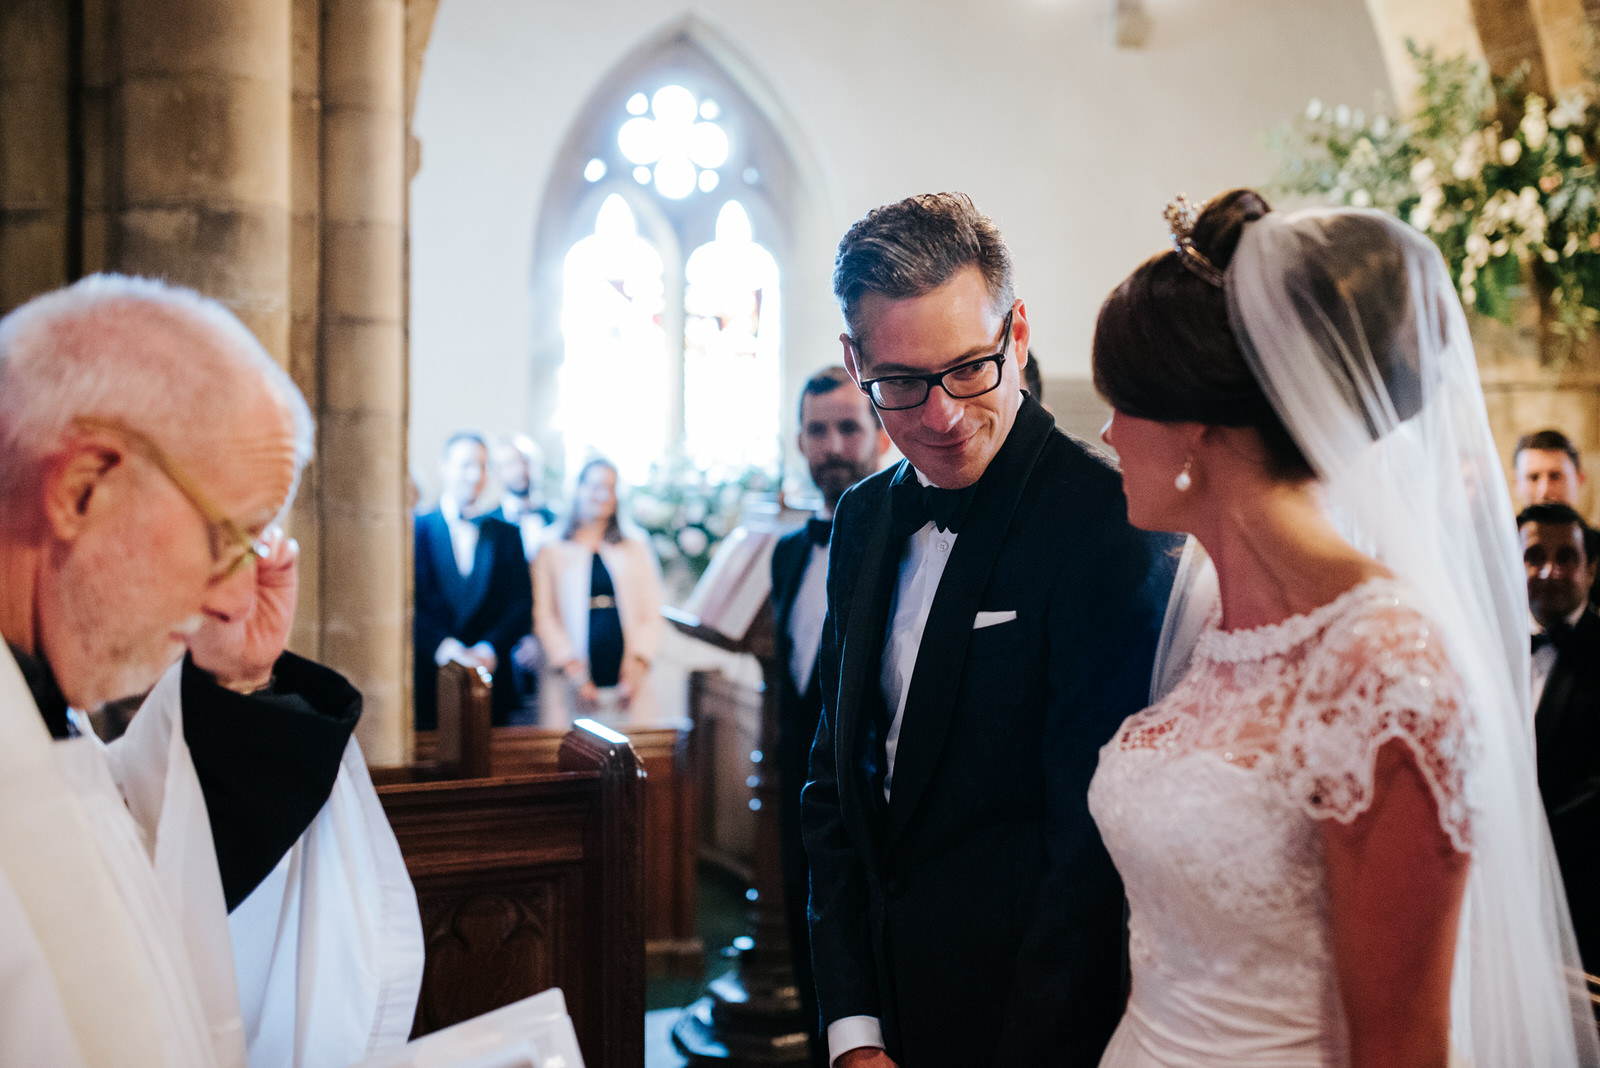 Grooms sees Bride inside Church for the first time and smiles